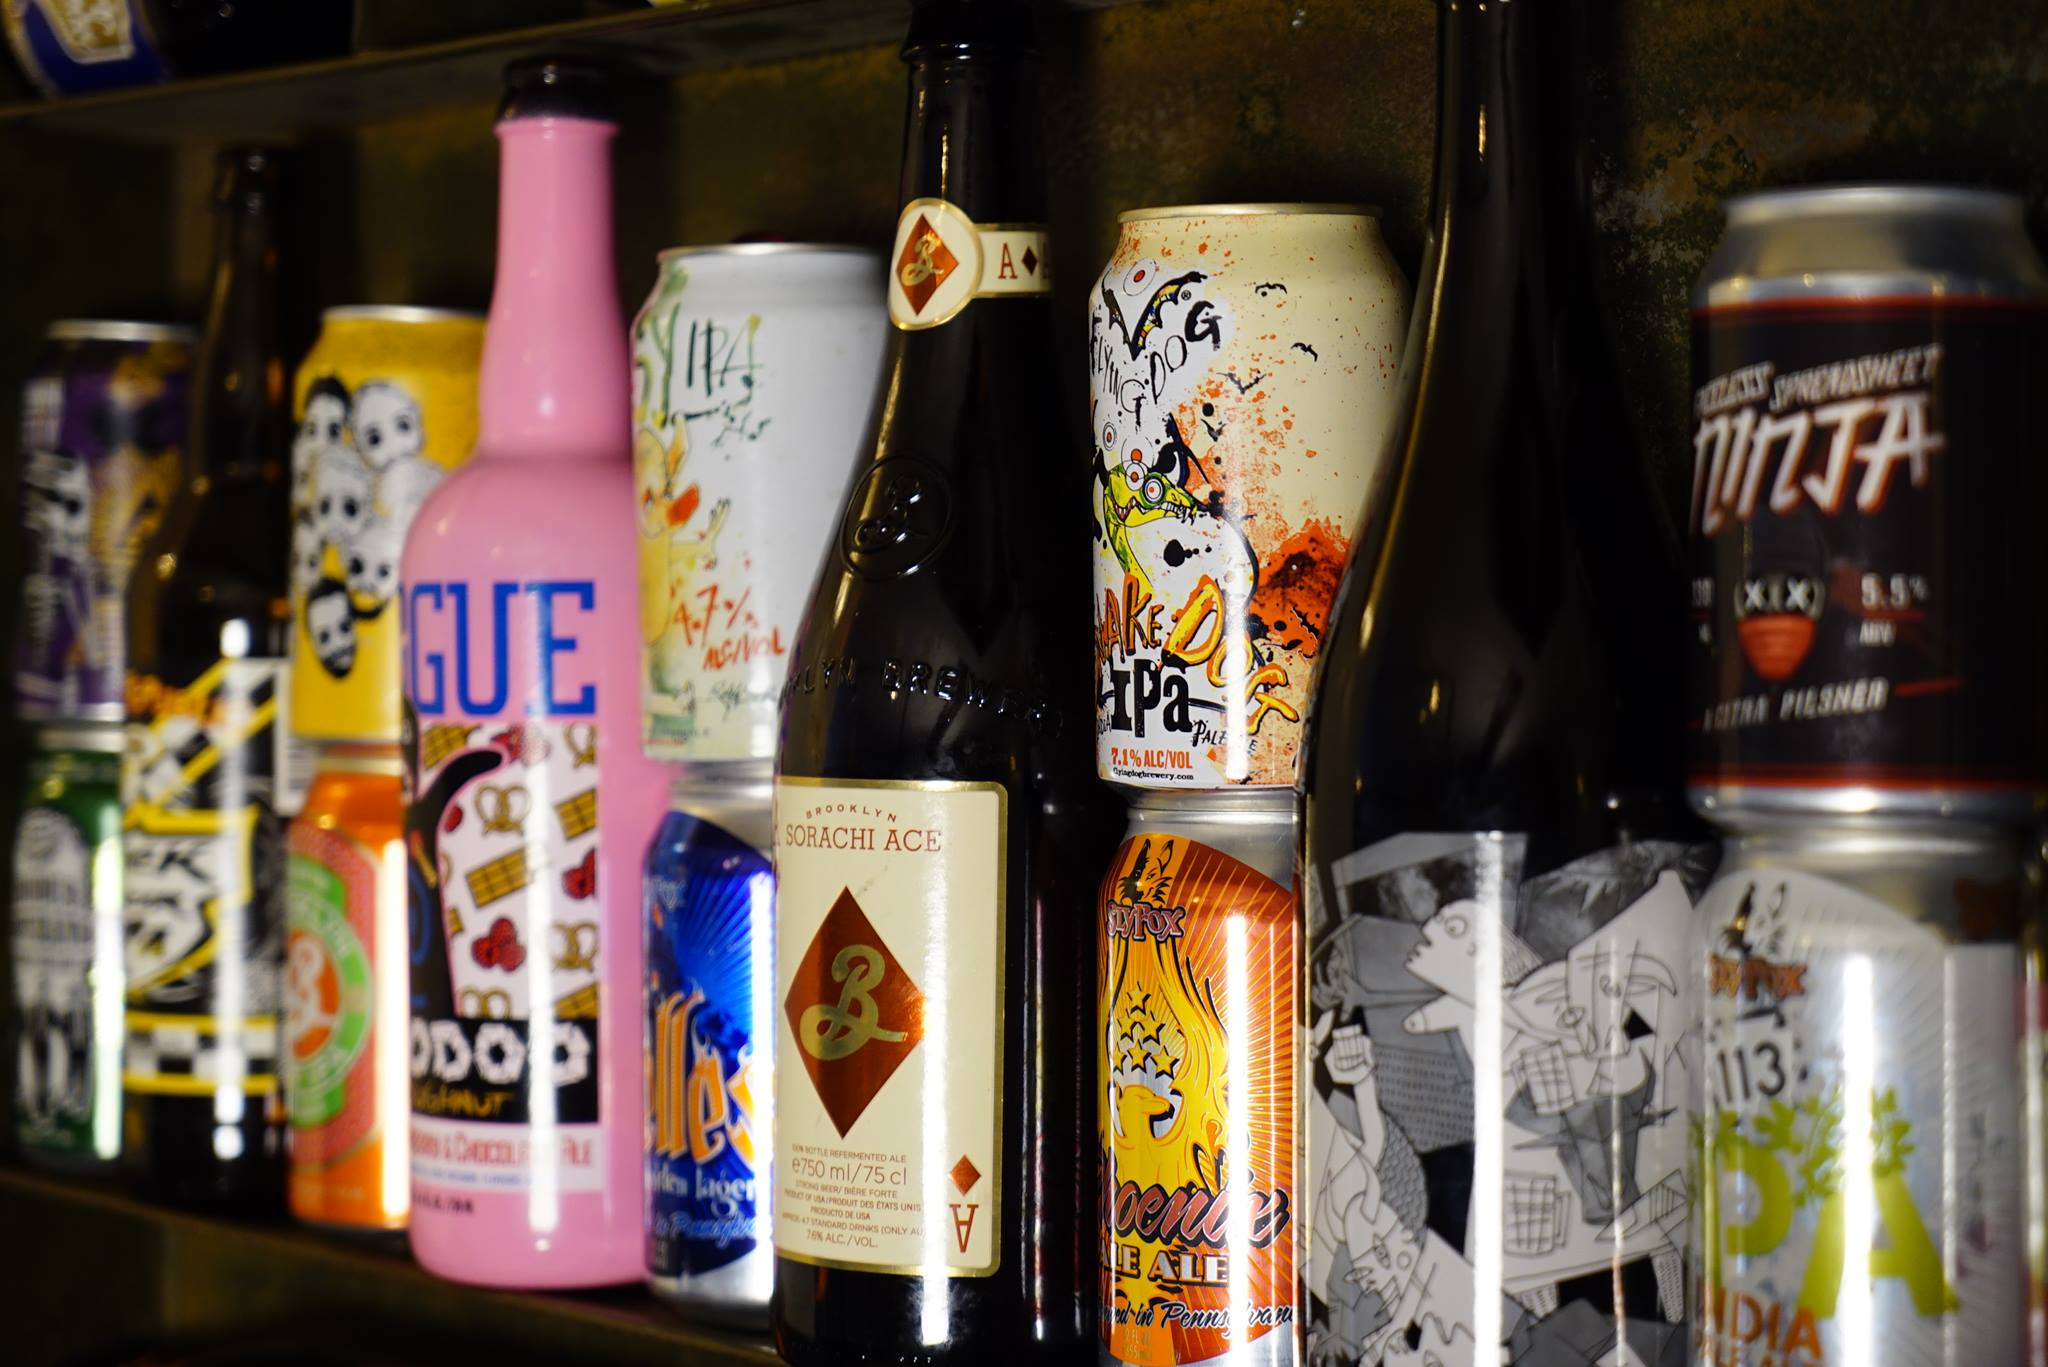 Craft beer selection at The Star & Anchor pub, West Ealing